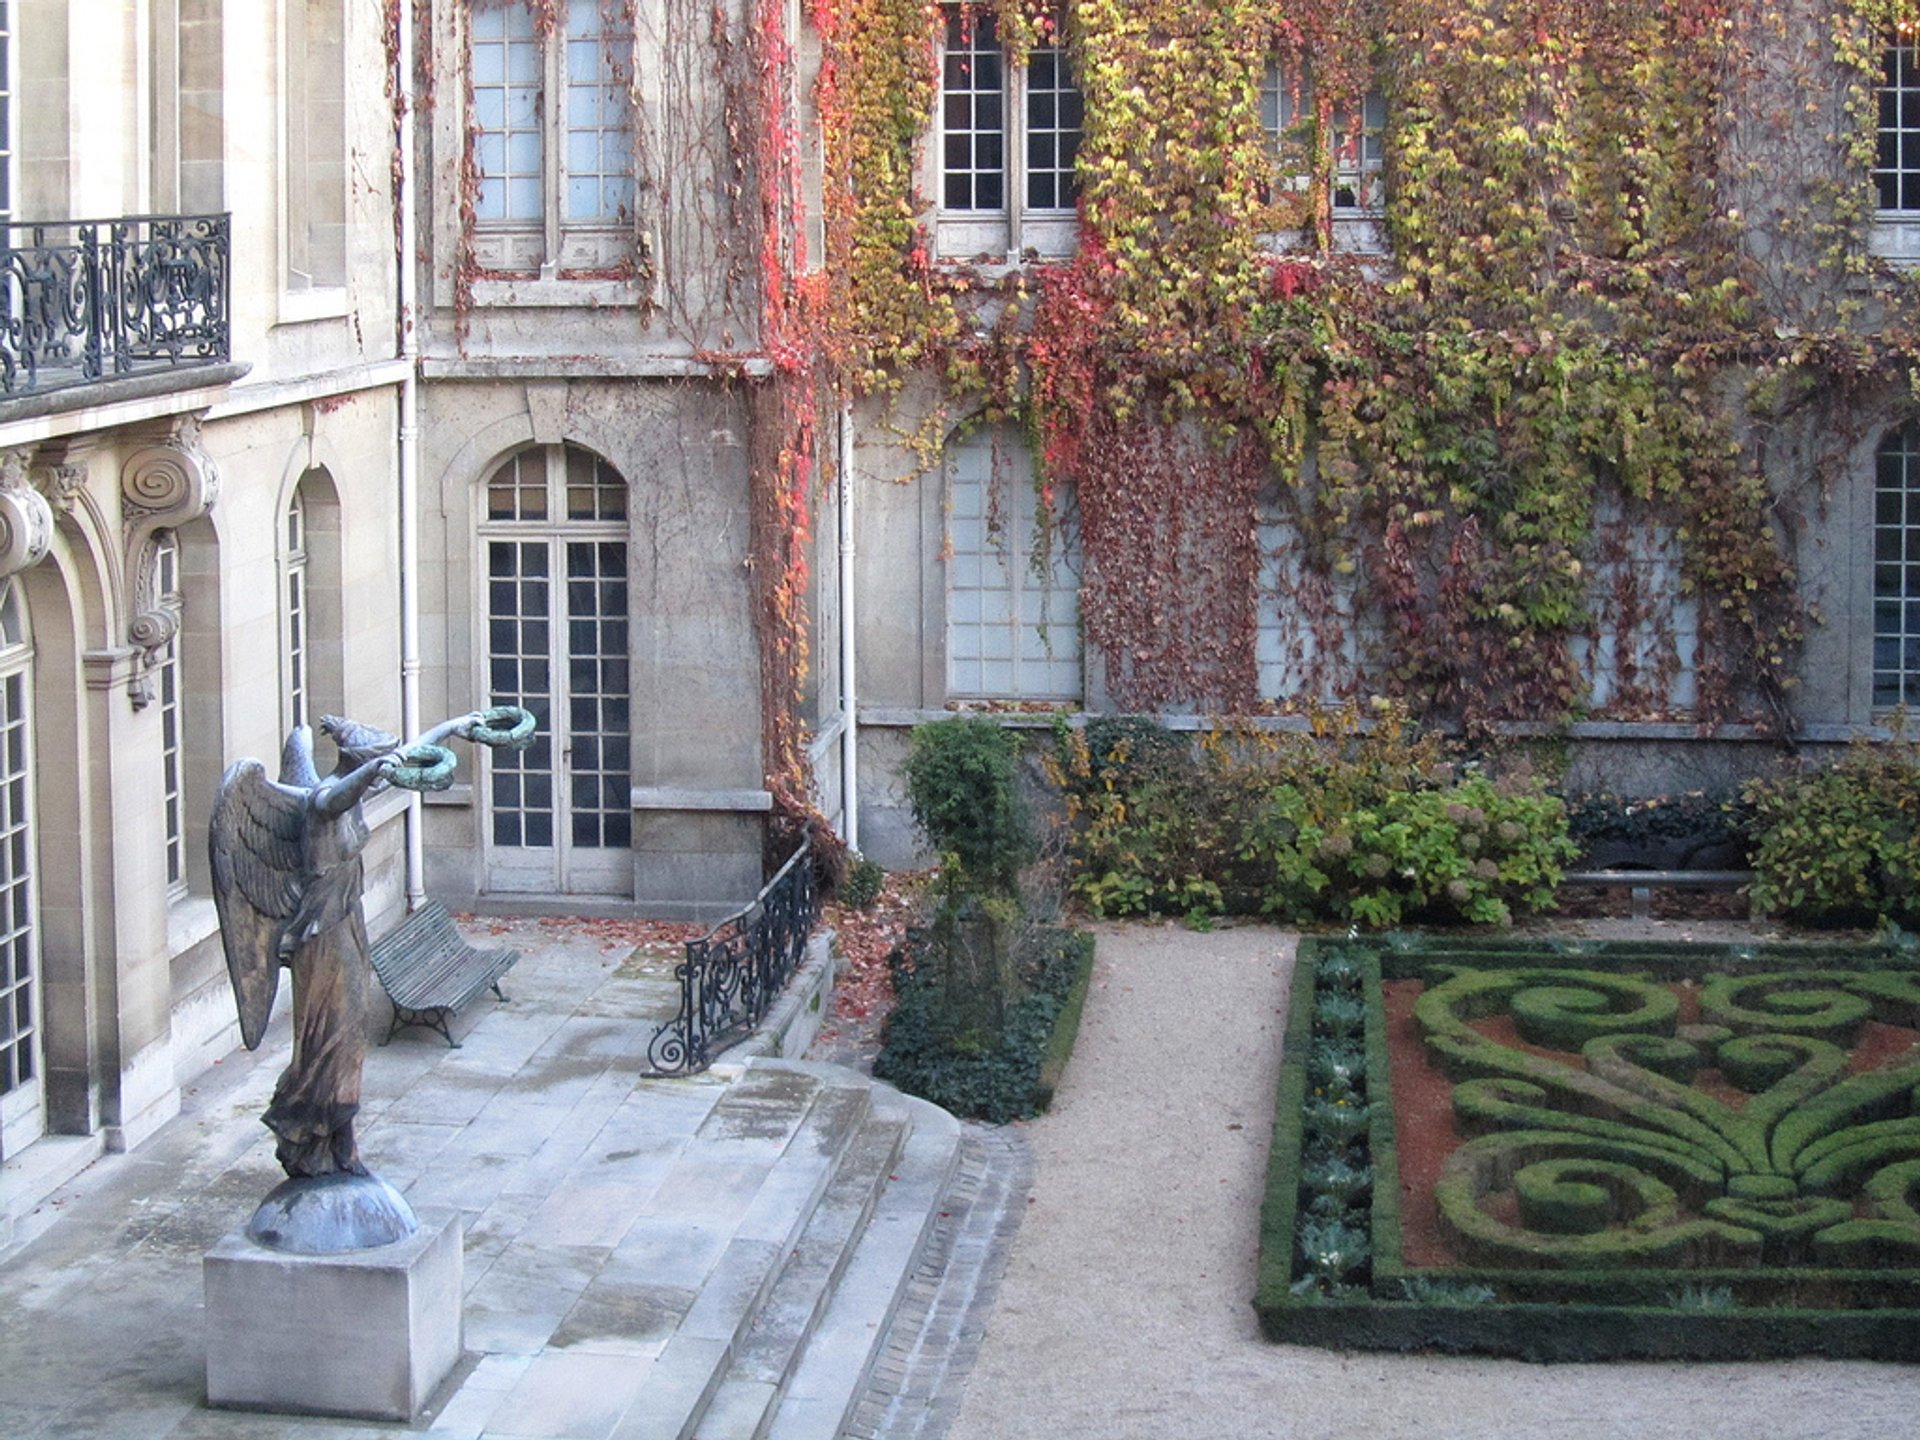 Parks and Gardens in Autumn Foliage in Paris - Best Season 2019